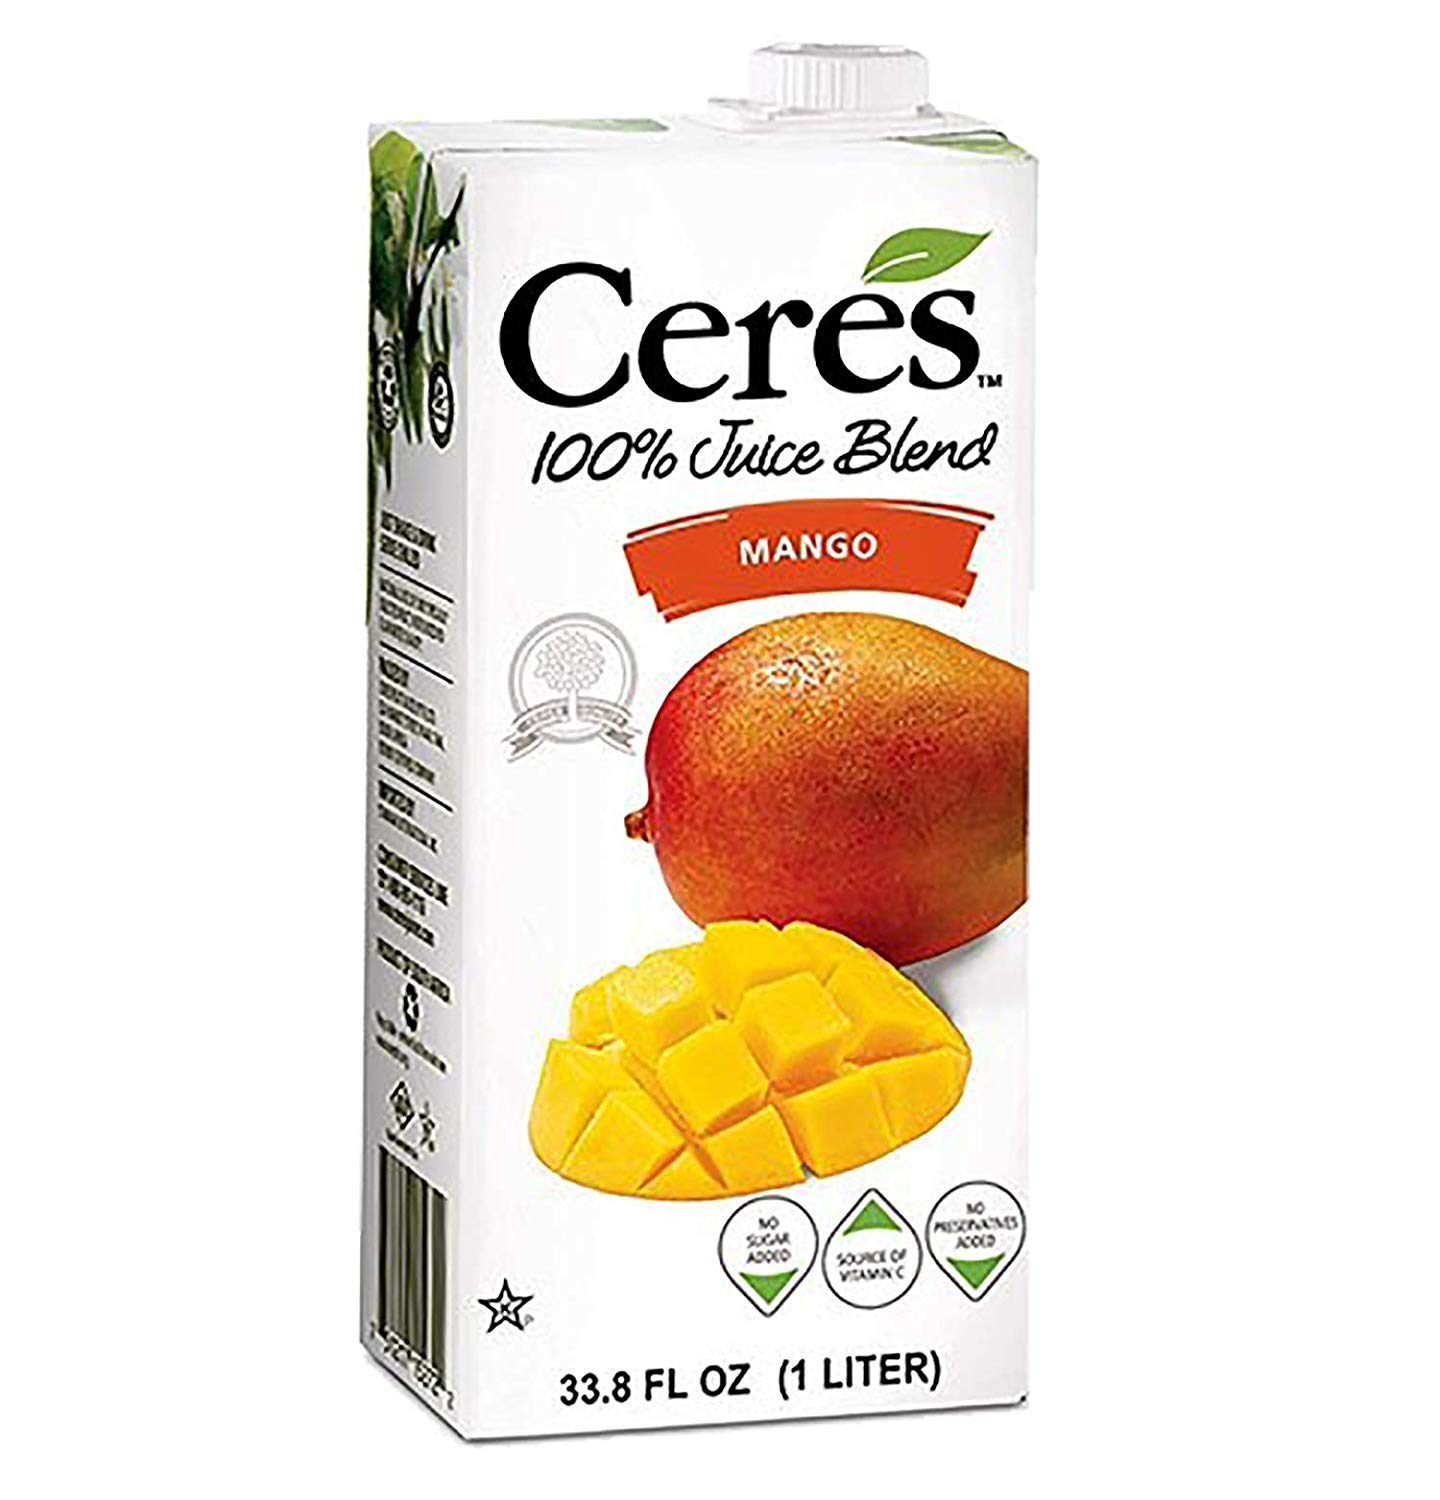 Ceres 100% All Natural Pure Fruit Juice Blend | Gluten Free | Rich in Vitamin C | No Sugar or Preservatives Added, 33.8 FL OZ, Mango (Pack of 12)